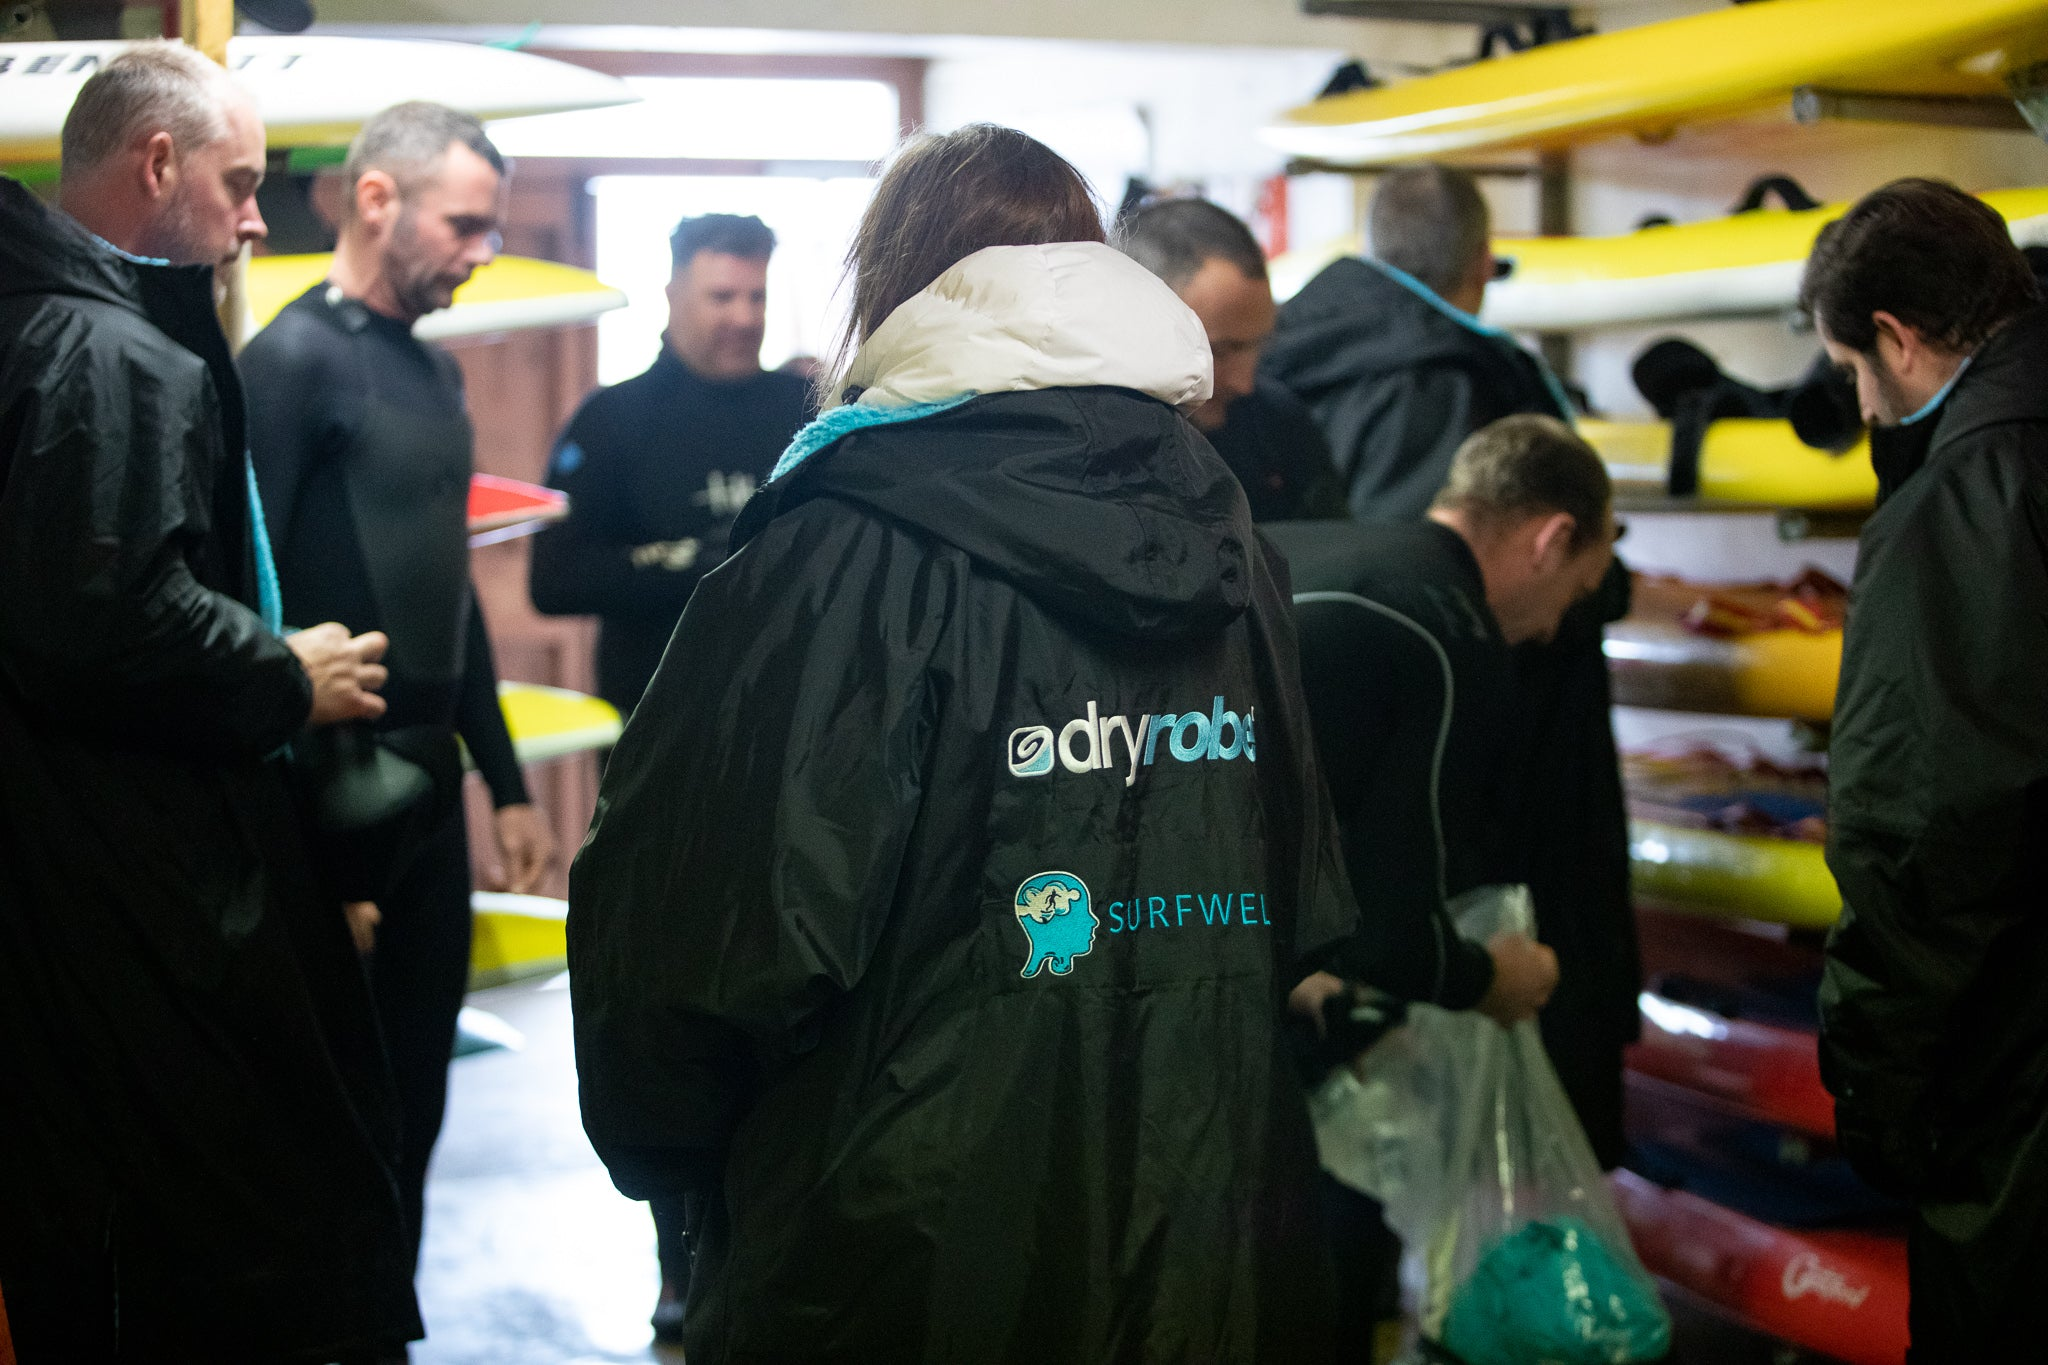 Surfers getting their boards ready indoors wearing dryrobes